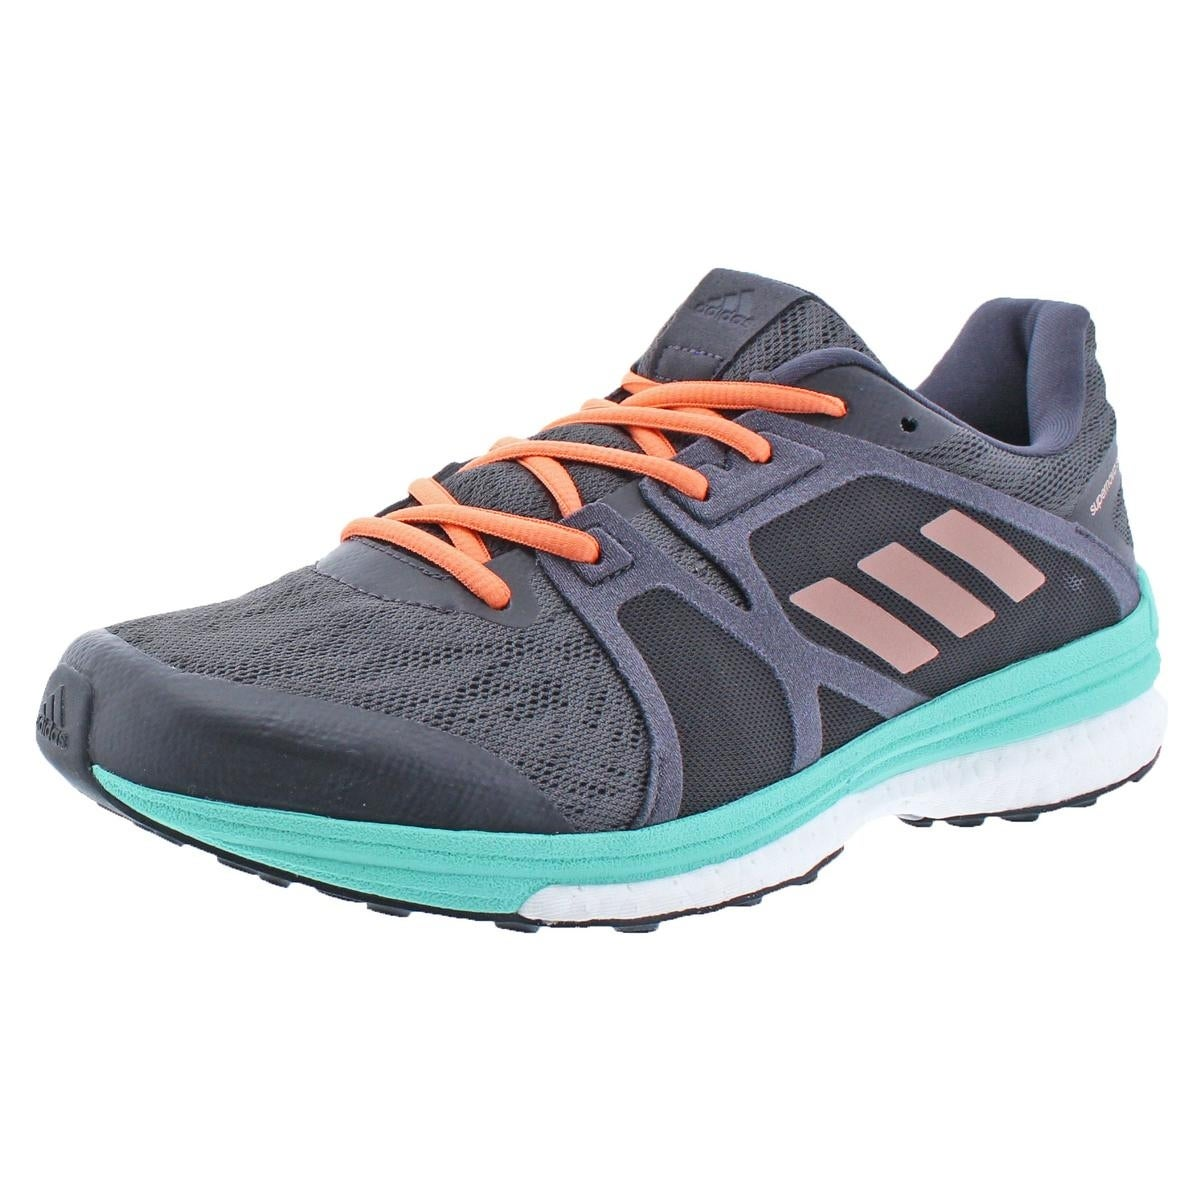 new styles 48f8a 07a26 Adidas Womens Supernova Sequence 9 Running Shoes Round Toe Lace-Up - 9  medium (b,m)